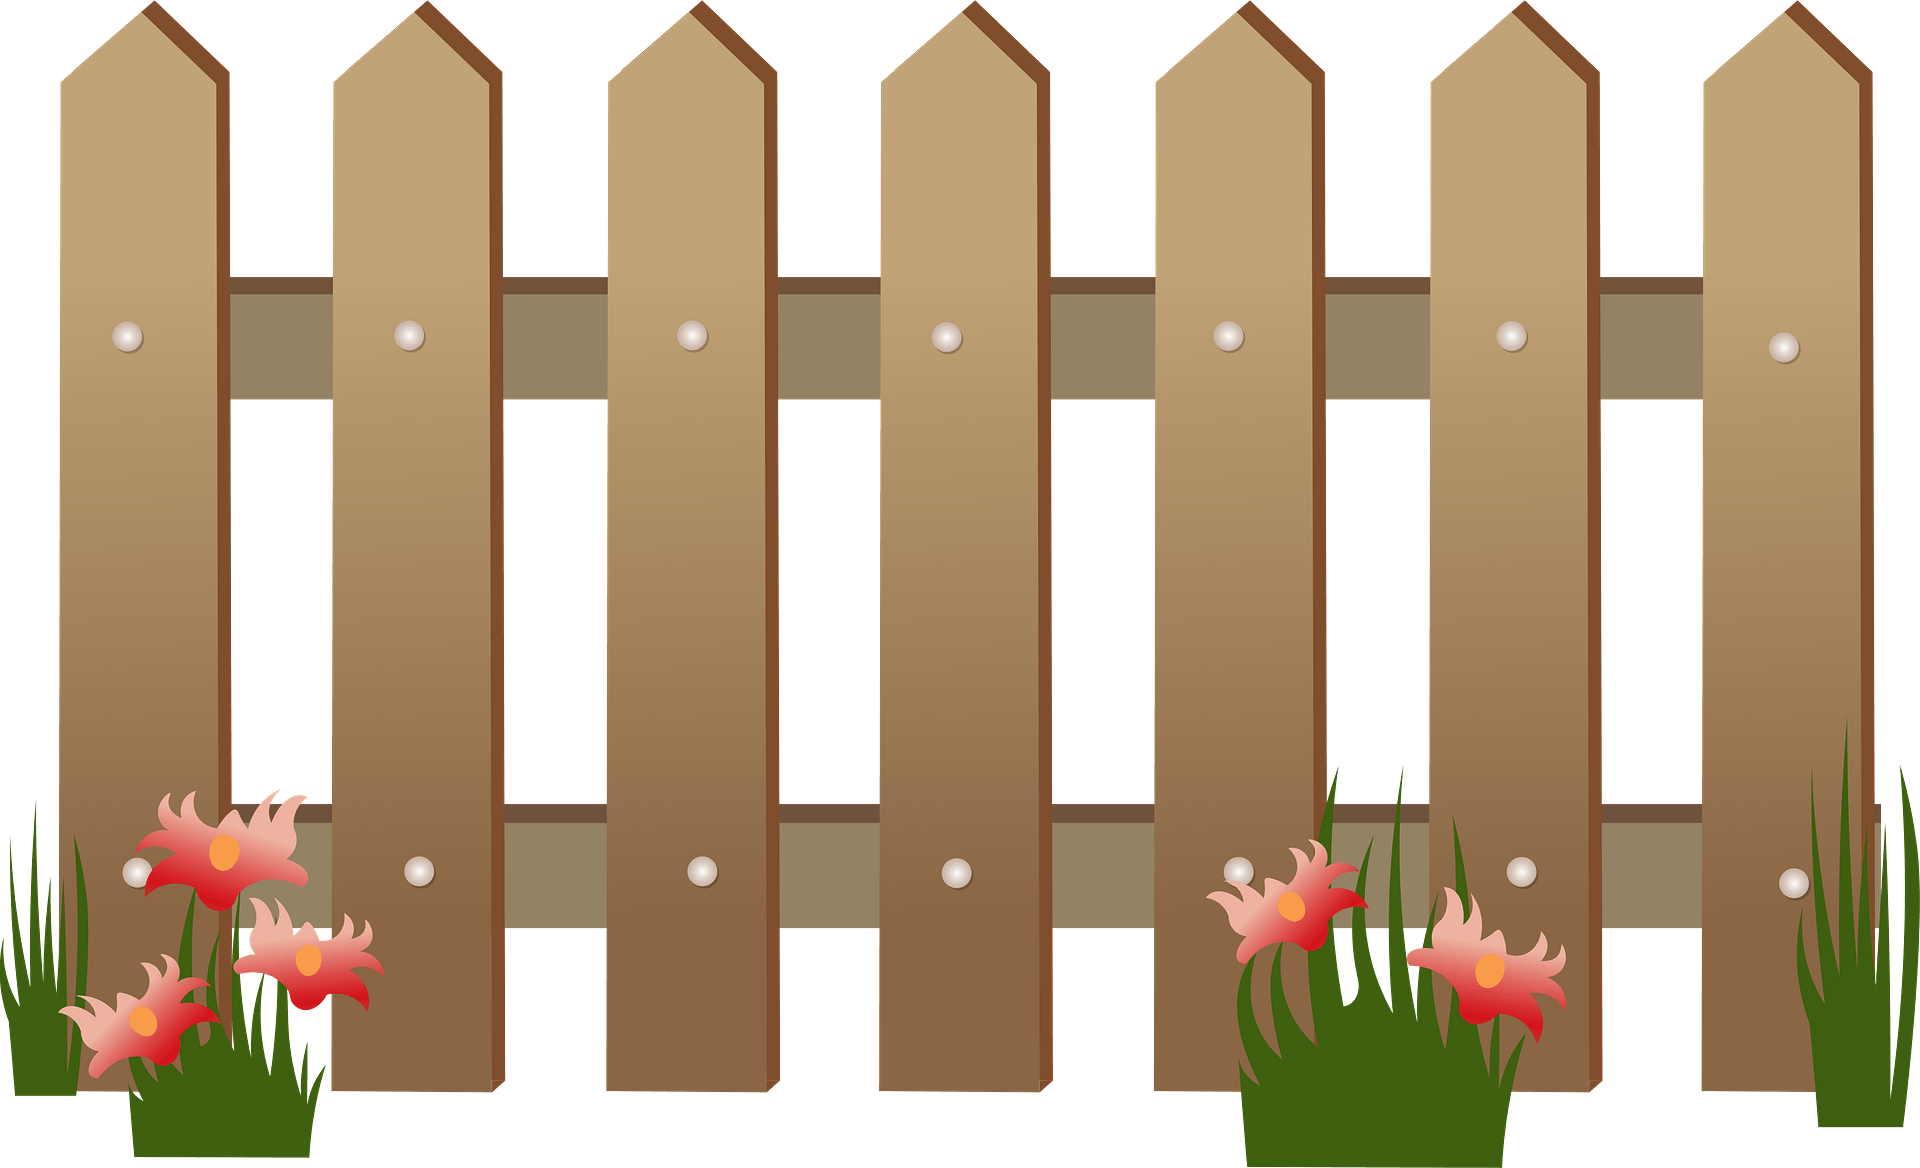 Fence Flower Garden Clip Art, PNG, 600x600px, Fence, Flower Garden,  Flowerpot, Garden, Garden Design Download Free